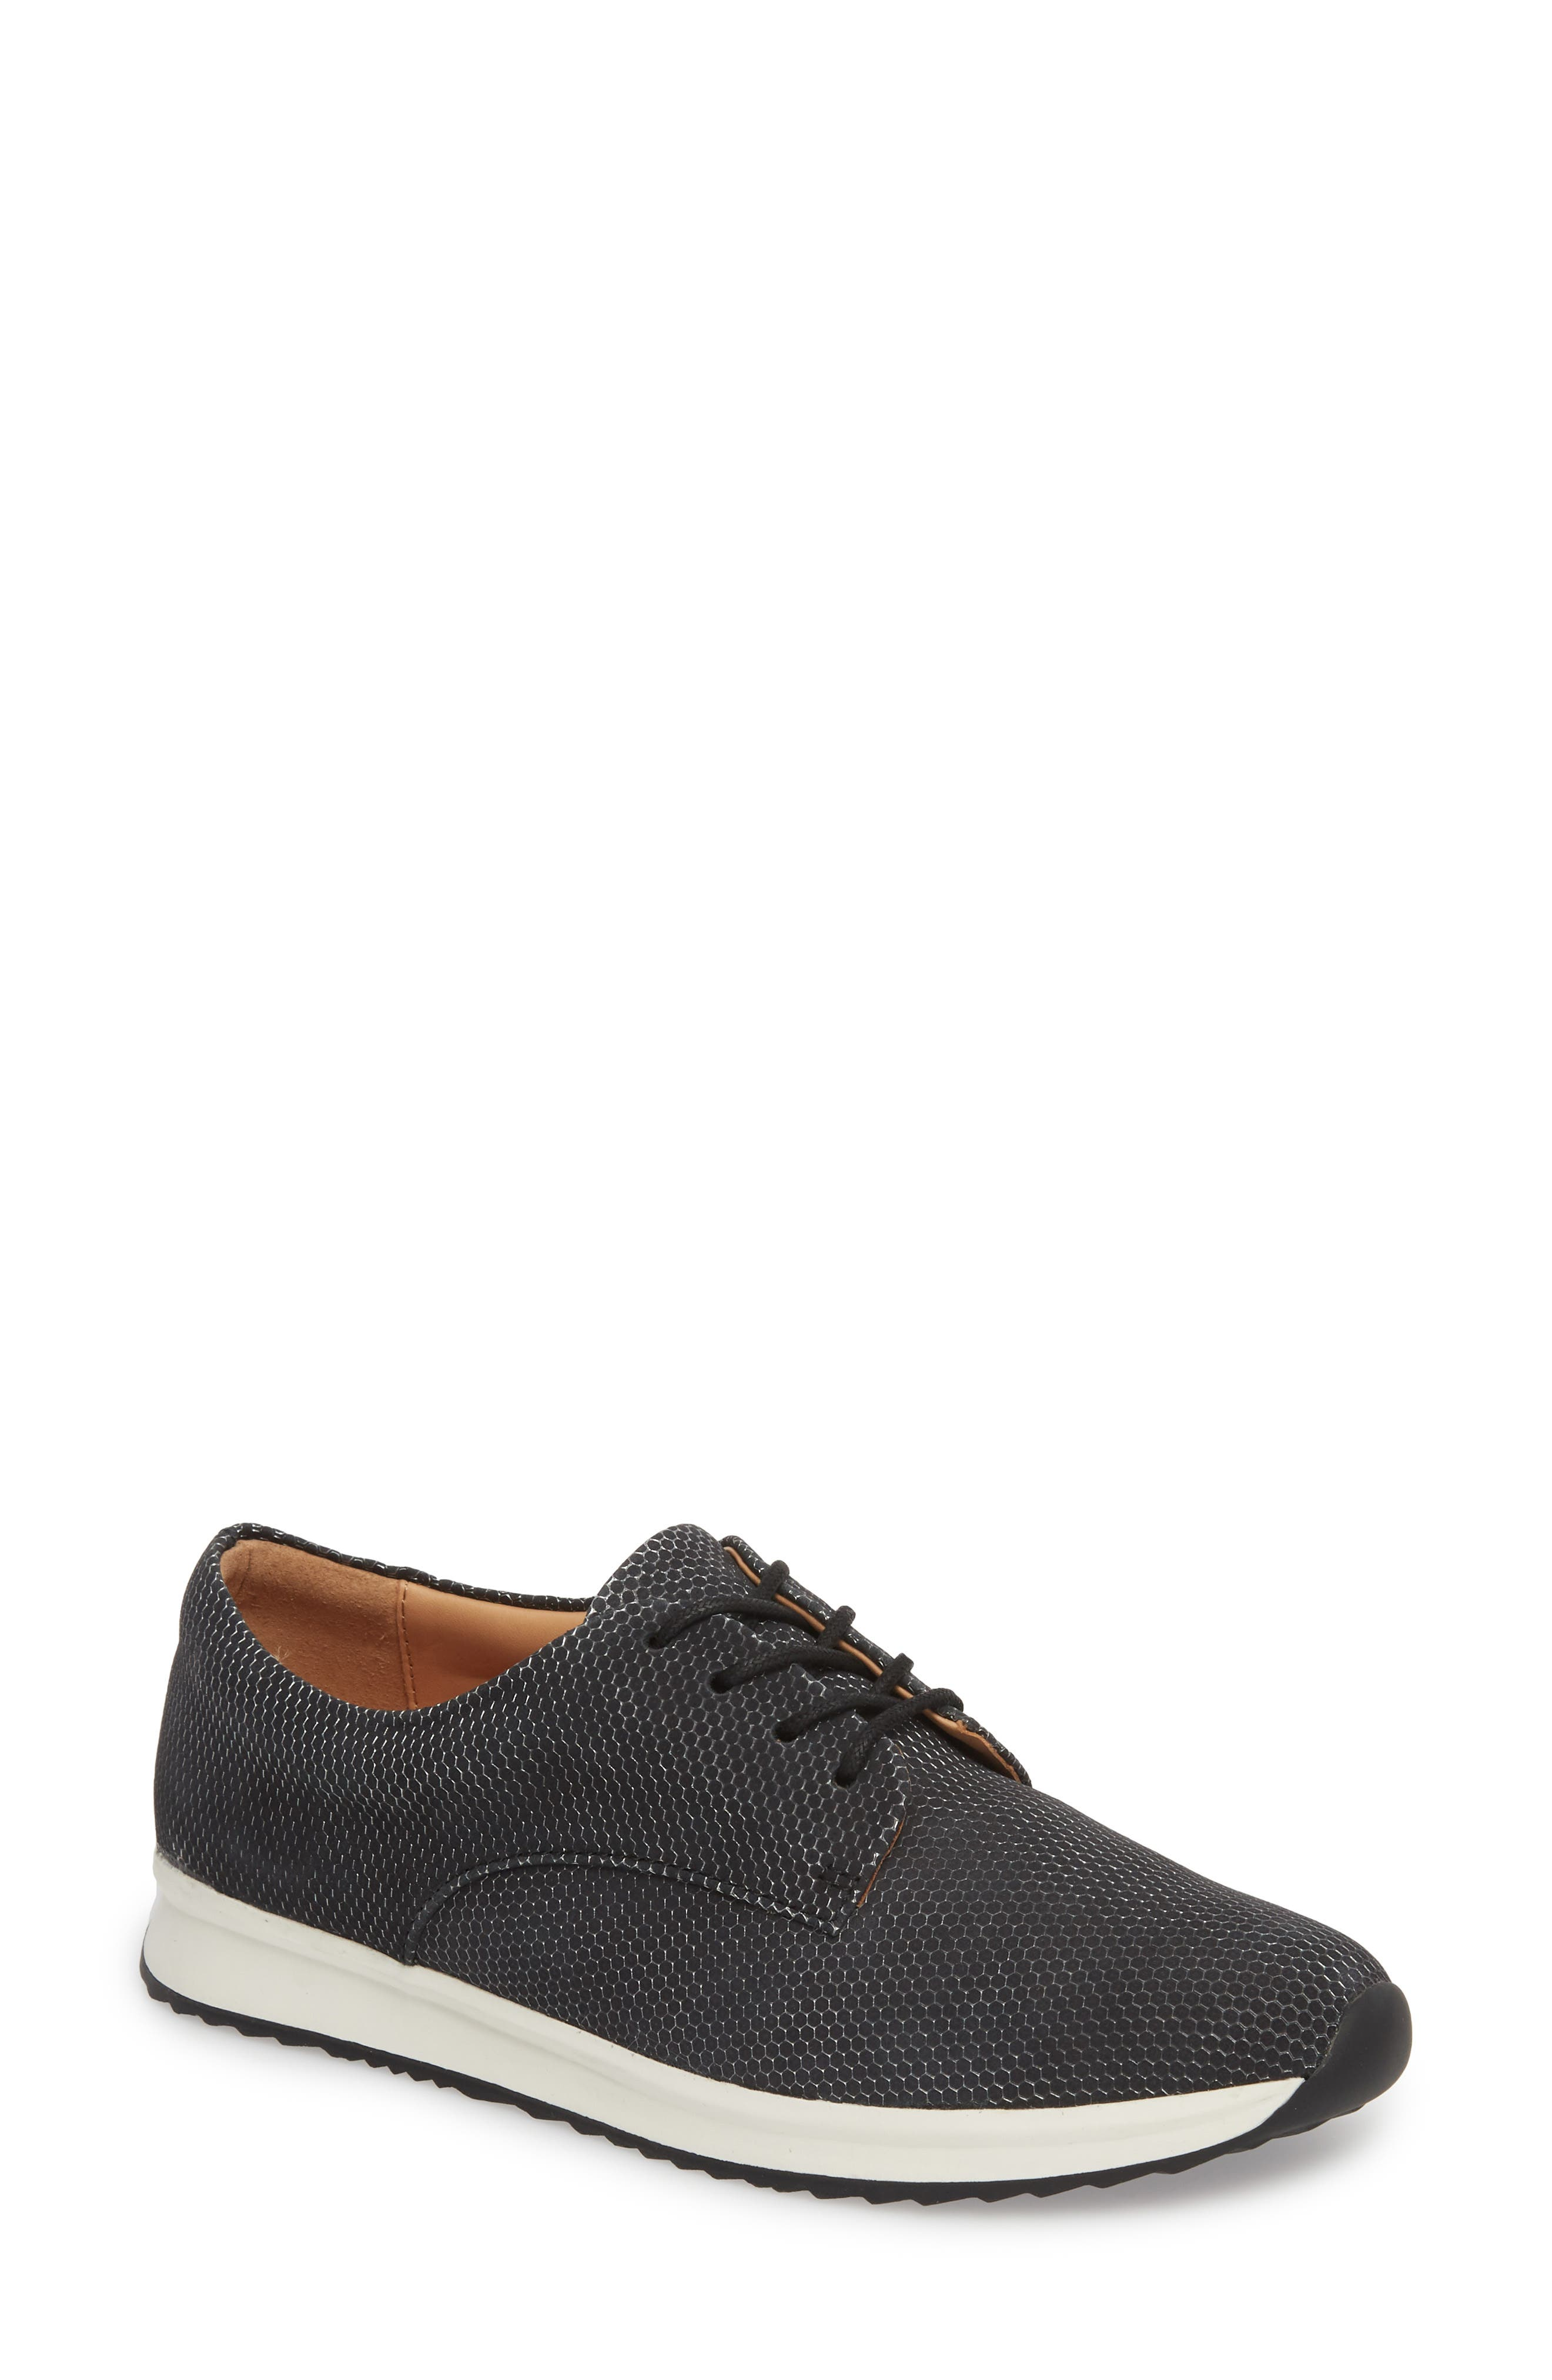 ROLLIE Sport Derby in Charcoal Honeycomb Leather